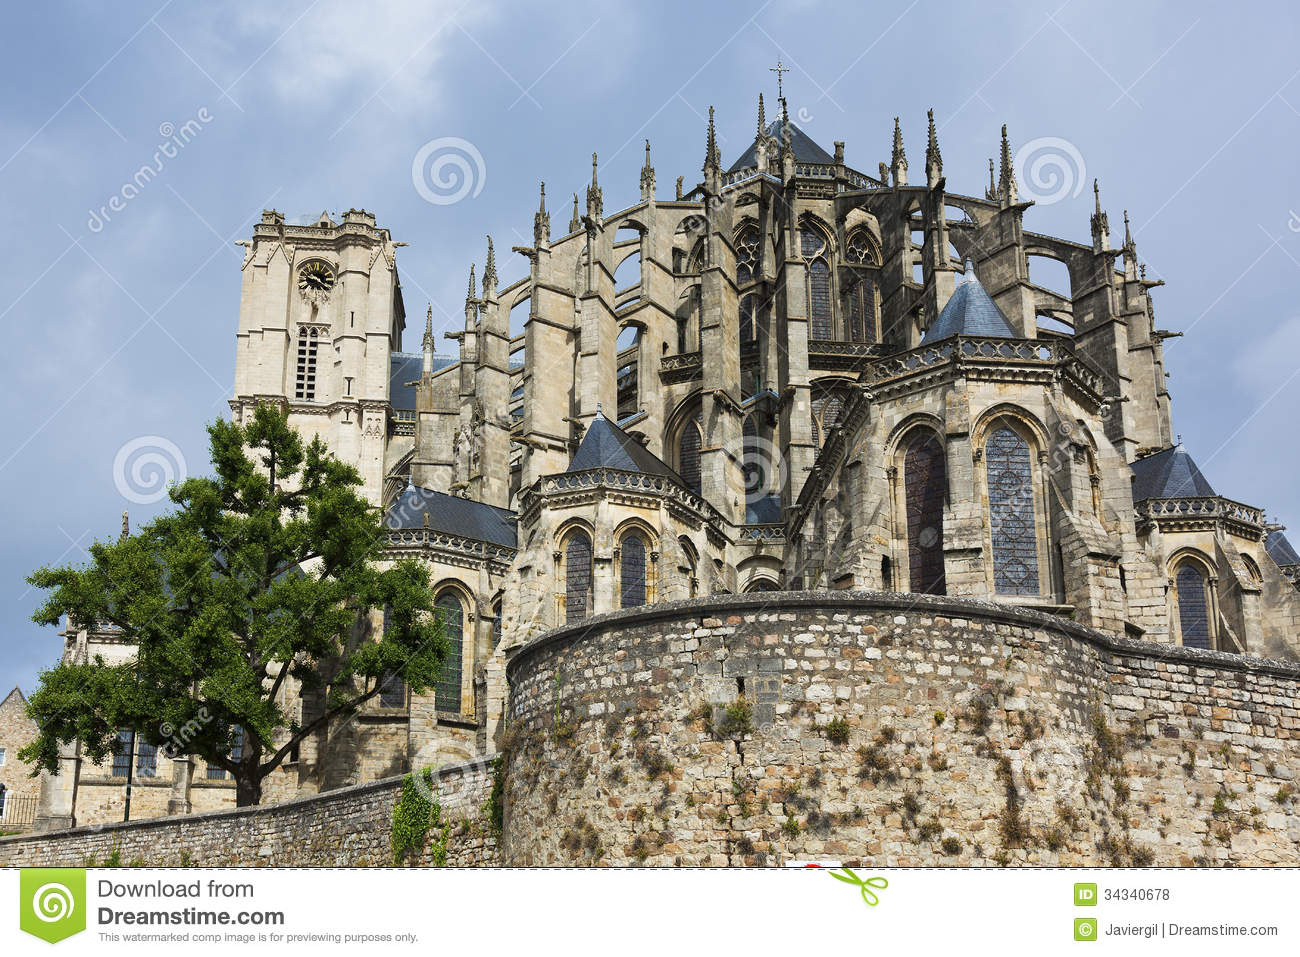 cathedral of le mans stock photo image of religion destination 34340678. Black Bedroom Furniture Sets. Home Design Ideas